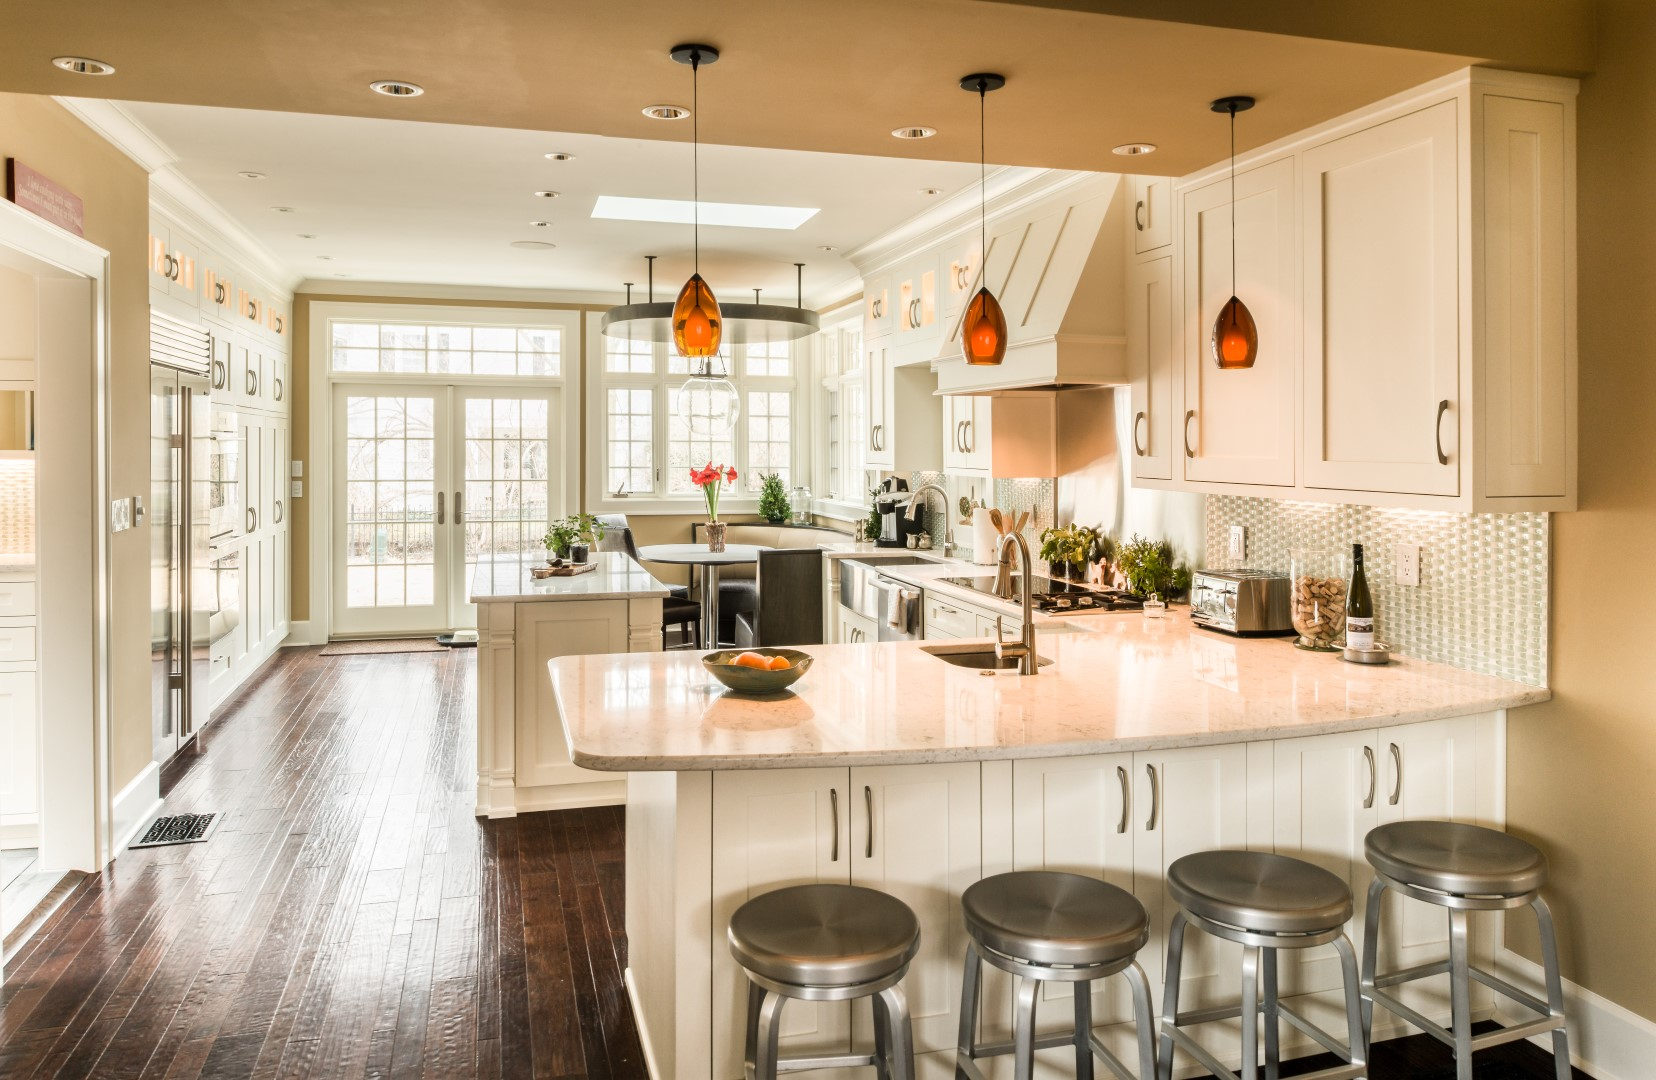 open floor plan tops list for 2018 home remodeling trends | central